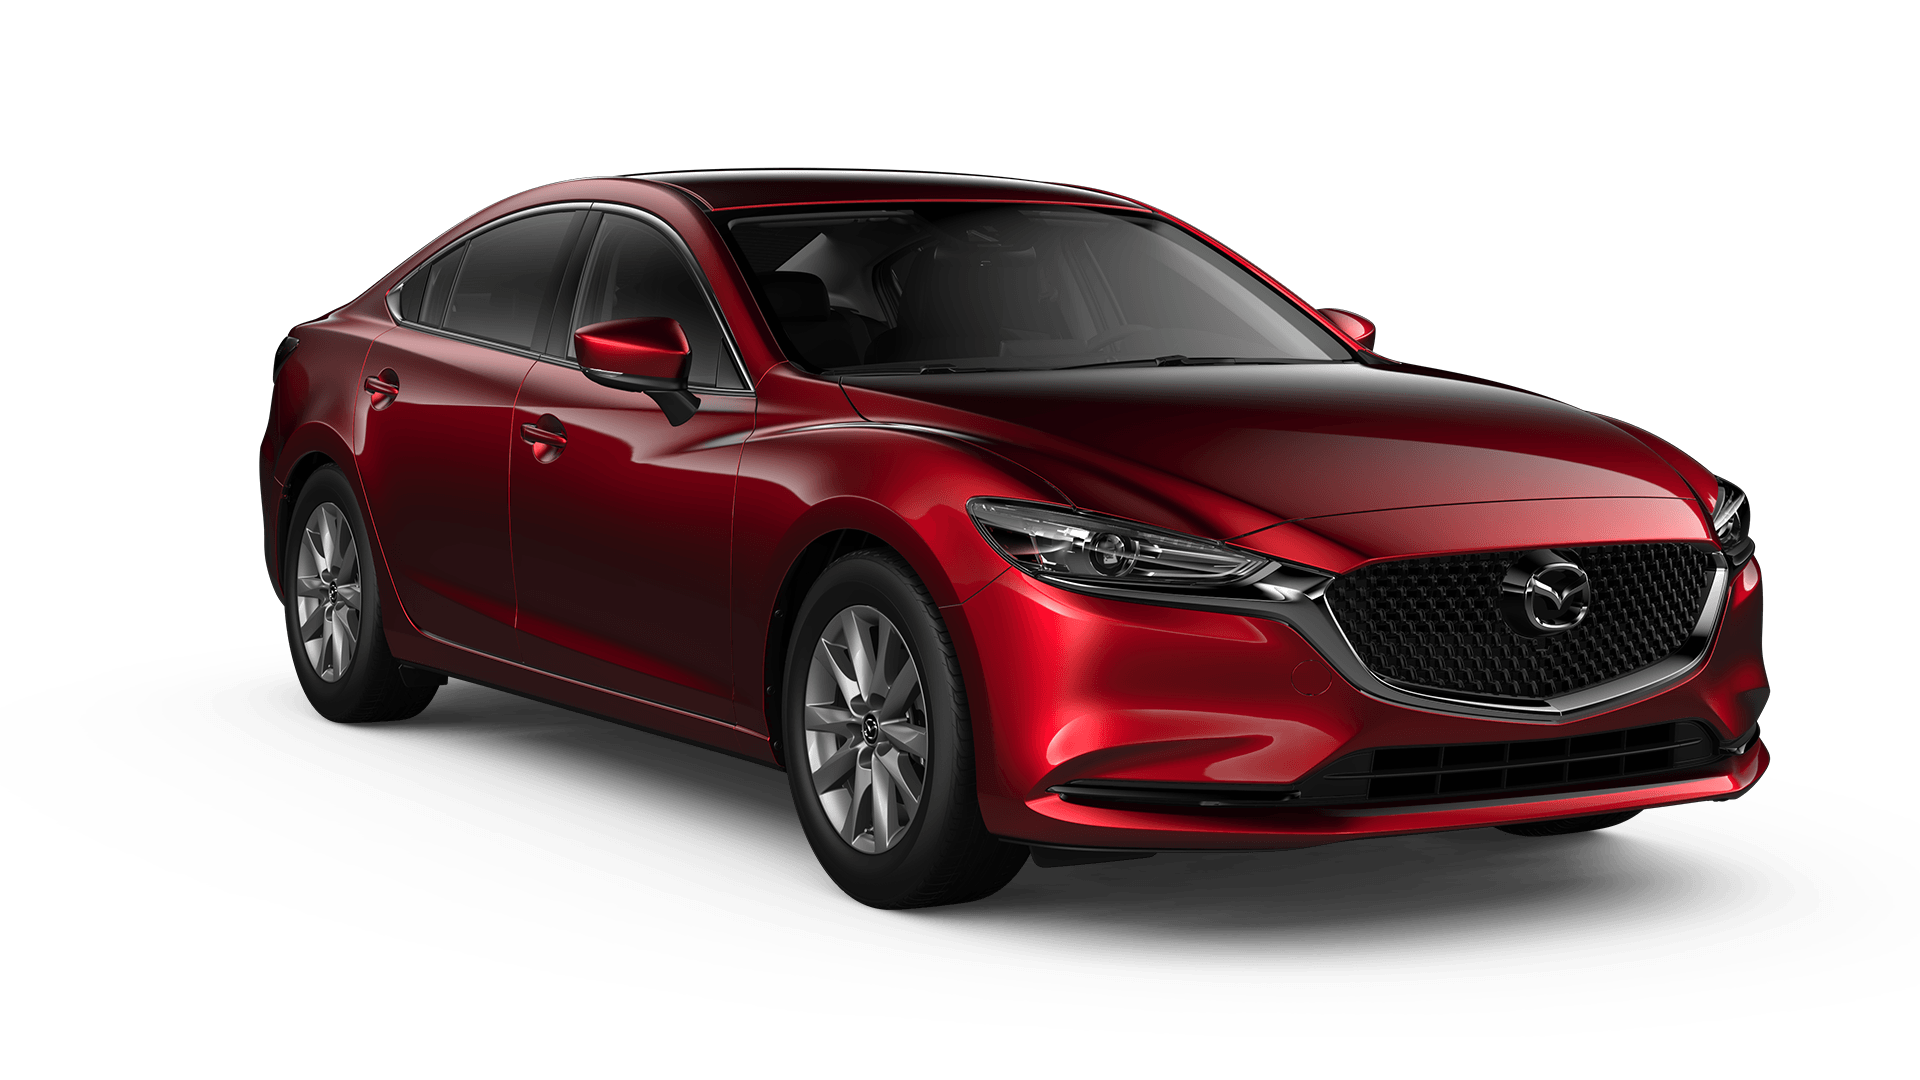 6-SPEED AUTOMATIC TRANSMISSION 2020 MAZDA6 GS